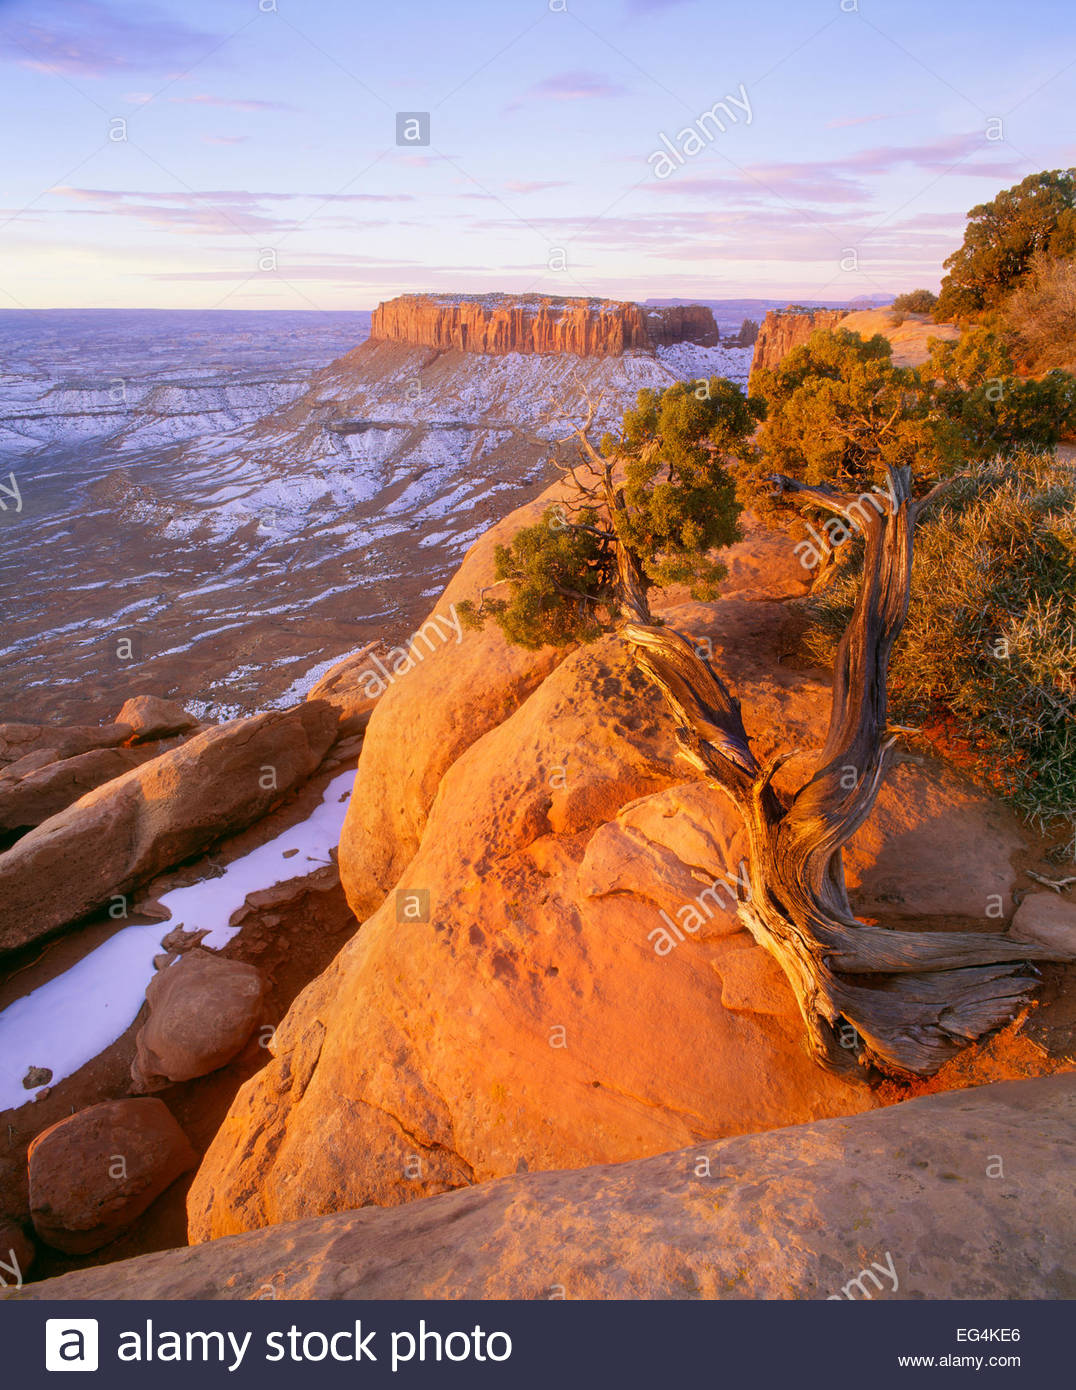 Lever du soleil d'hiver à Grandview Point. Île dans le ciel. Canyonlands National Park, en Utah. Photo Stock